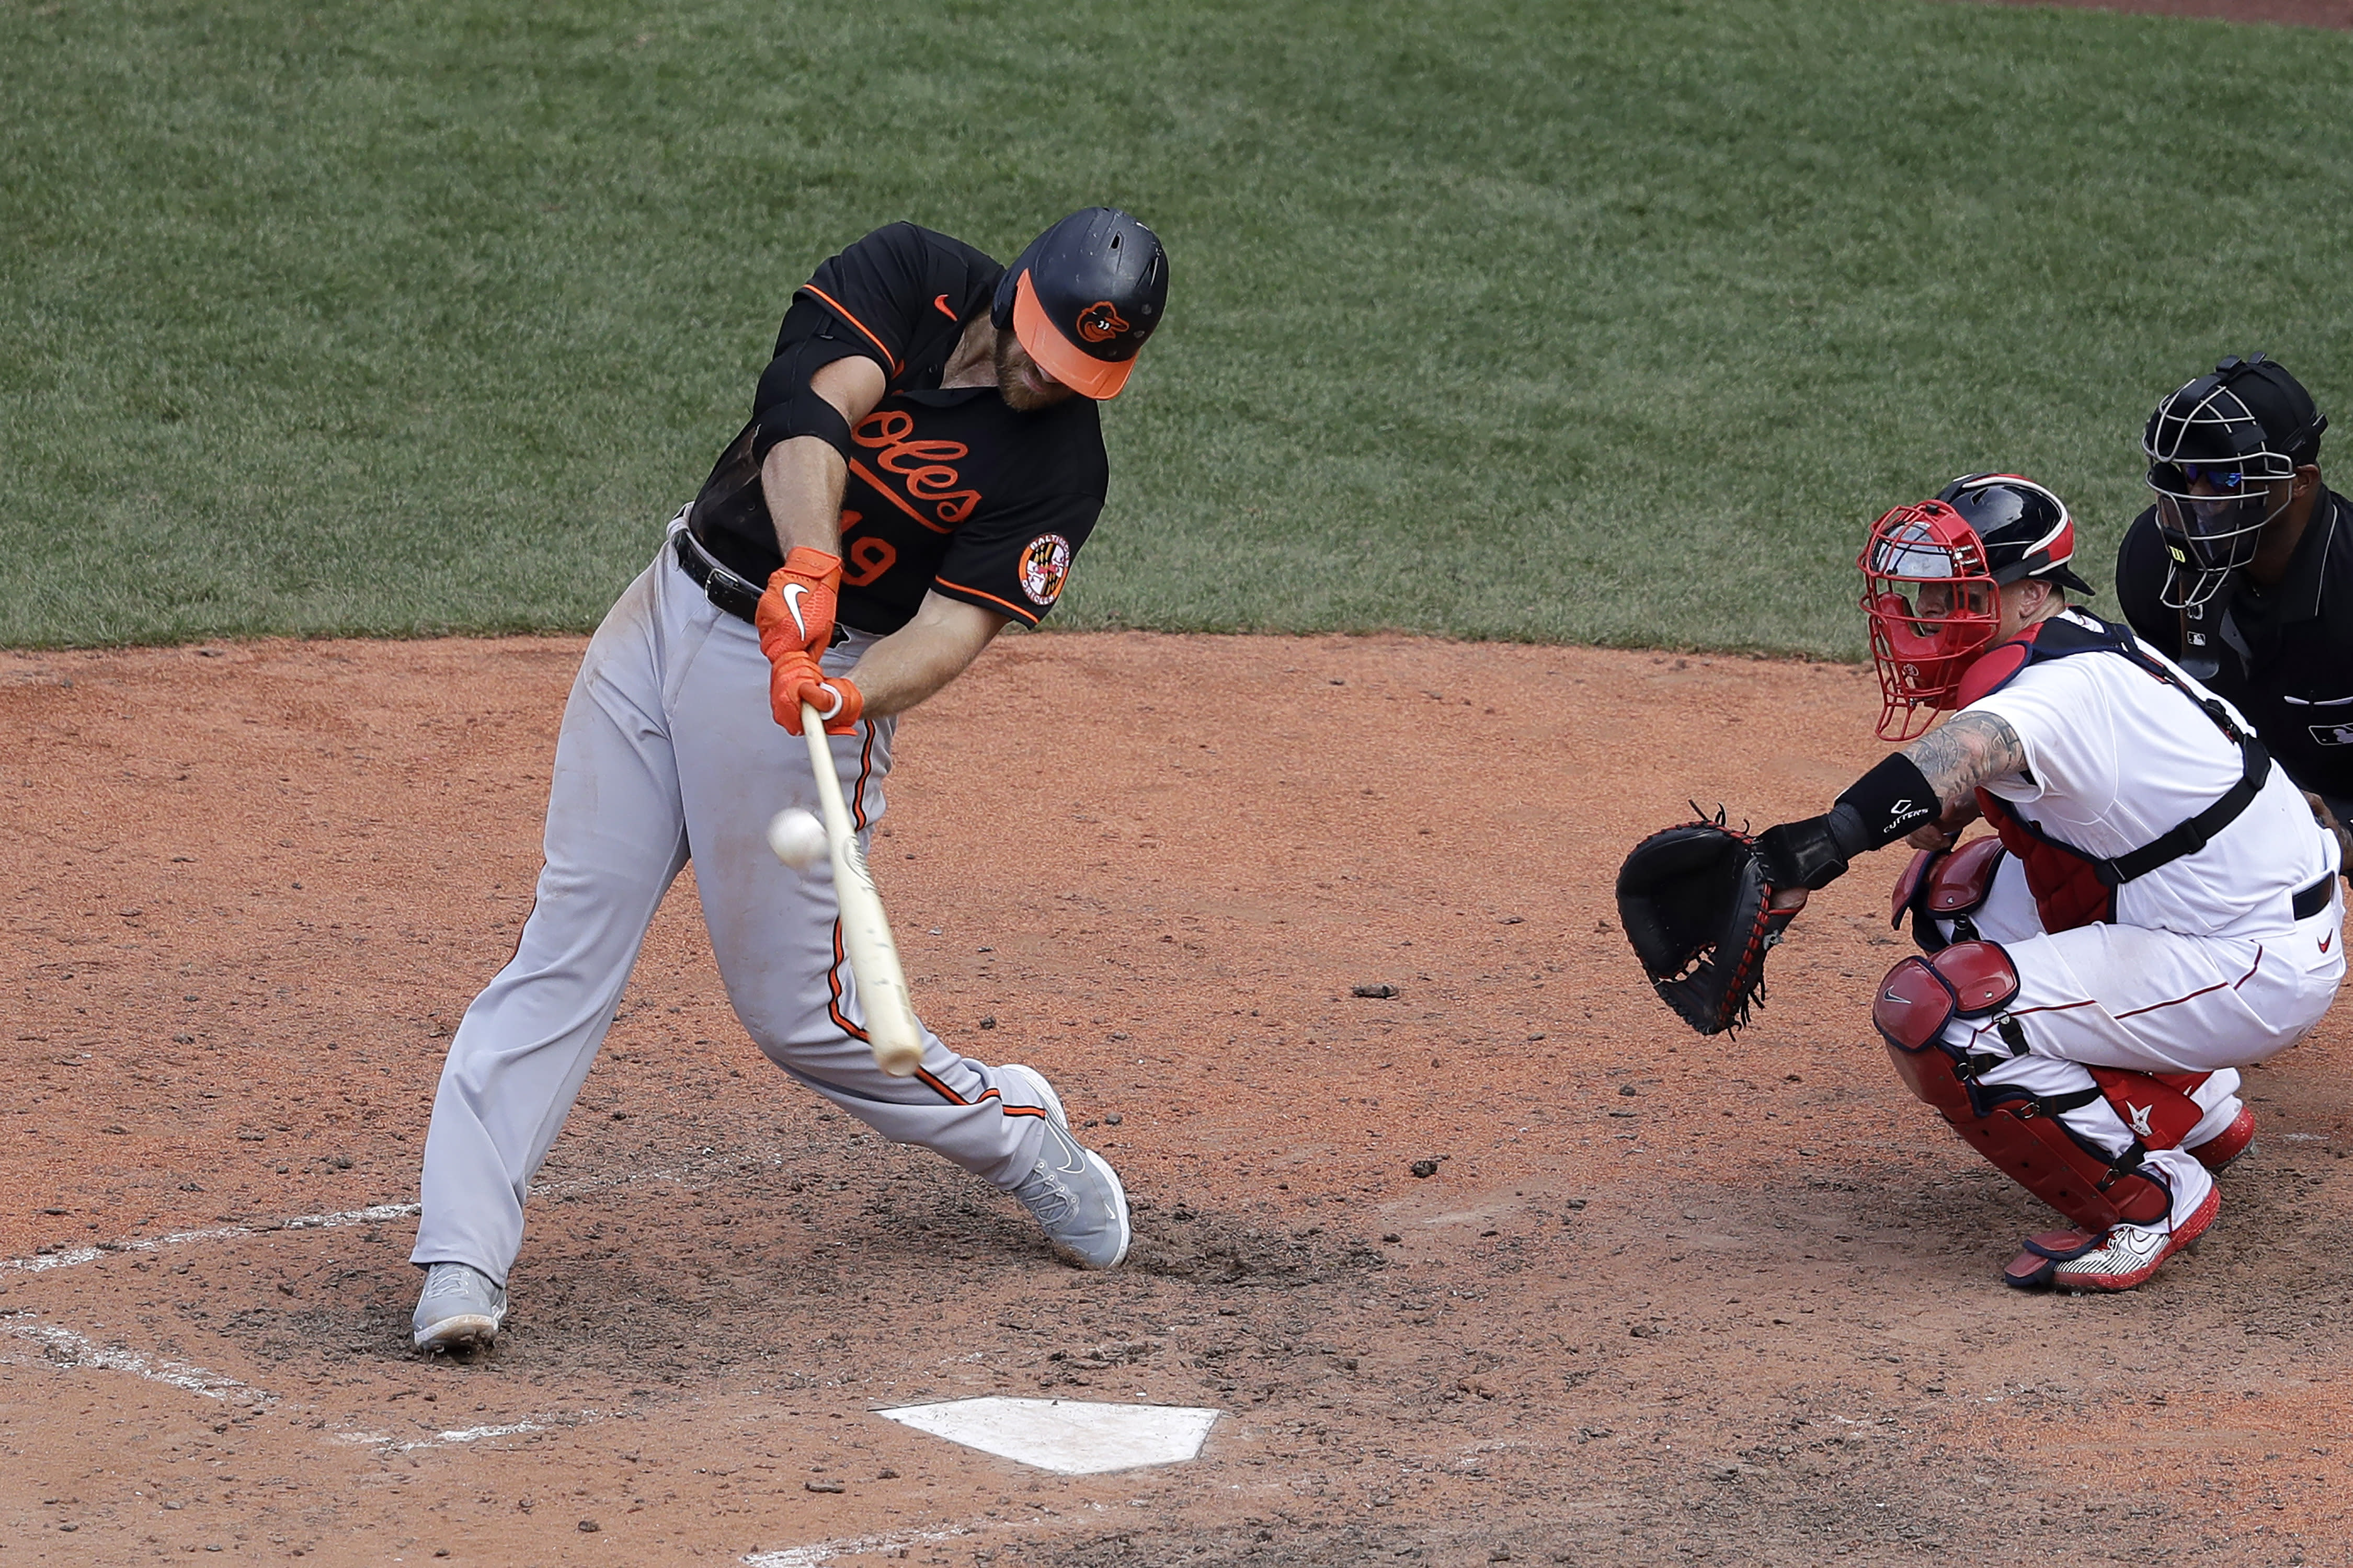 Baltimore Orioles' Chris Davis, left, hits an RBI-double as Boston Red Sox's Christian Vazquez looks on during the ninth inning of a baseball game, Sunday, July 26, 2020, in Boston. (AP Photo/Steven Senne)